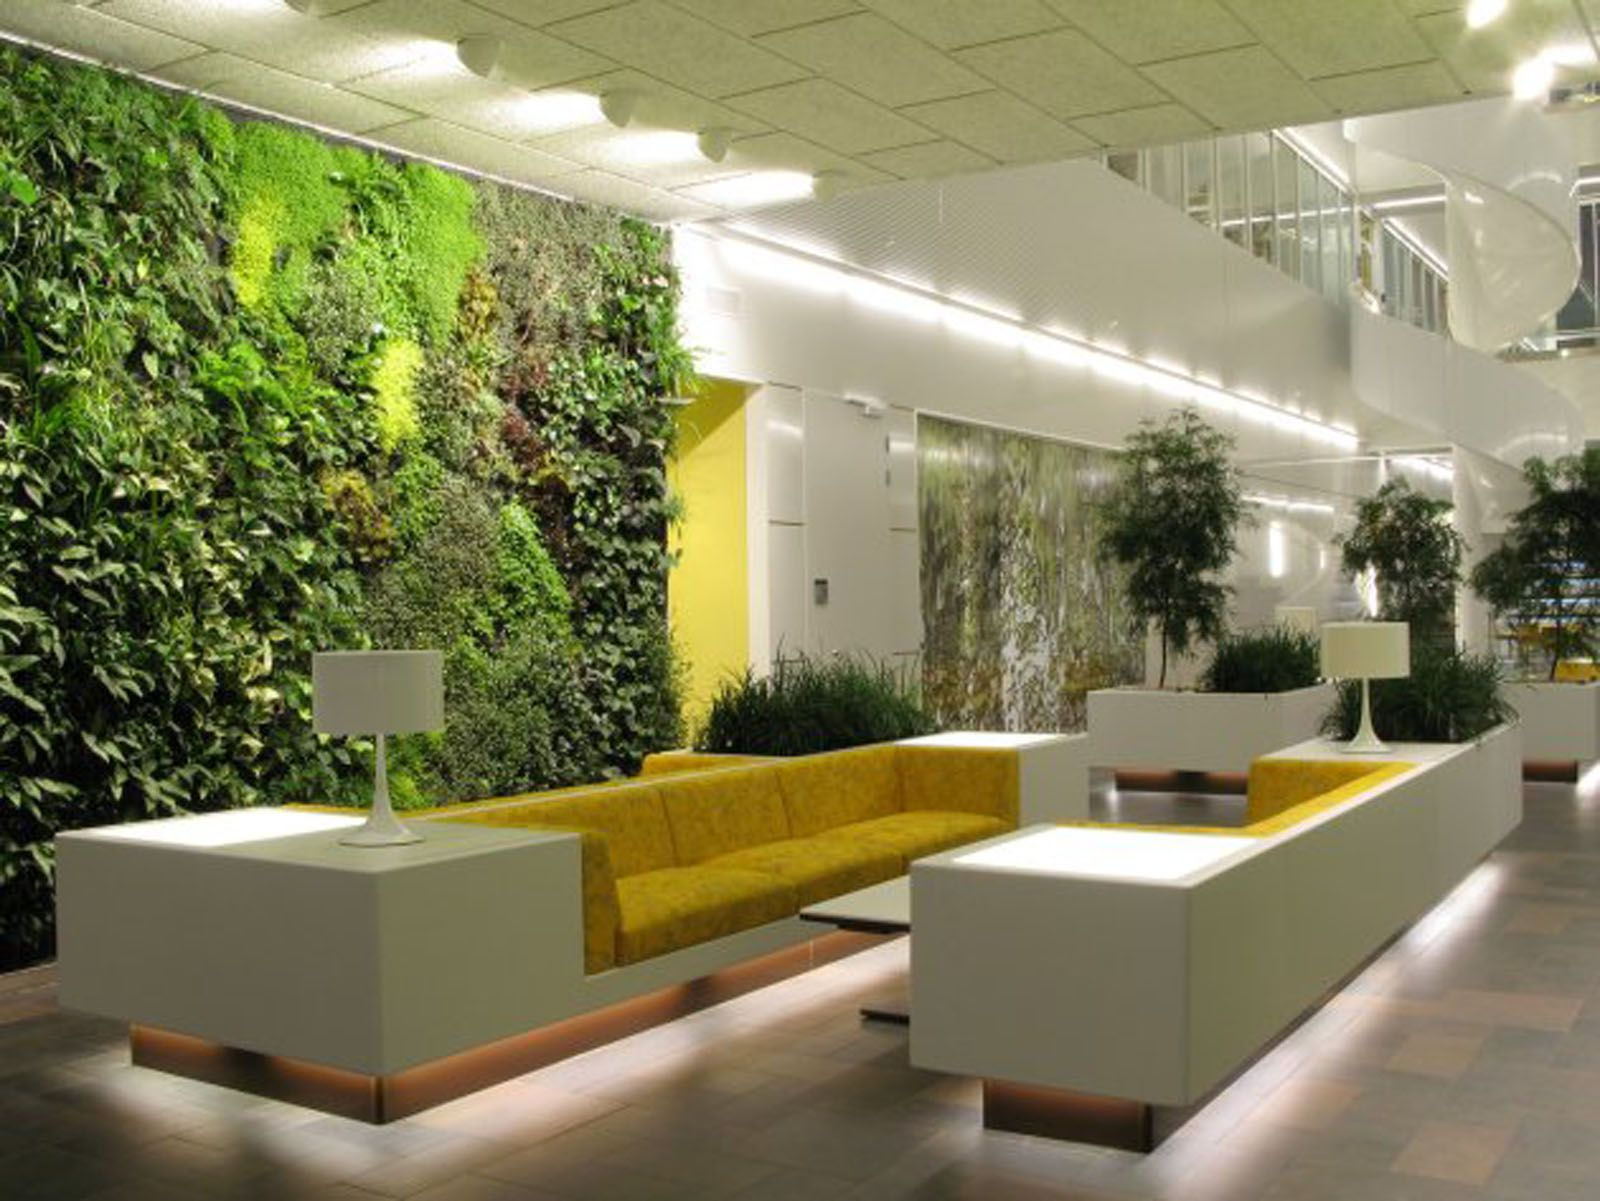 15 best images about lobby ideas on Pinterest | Shopping mall ...